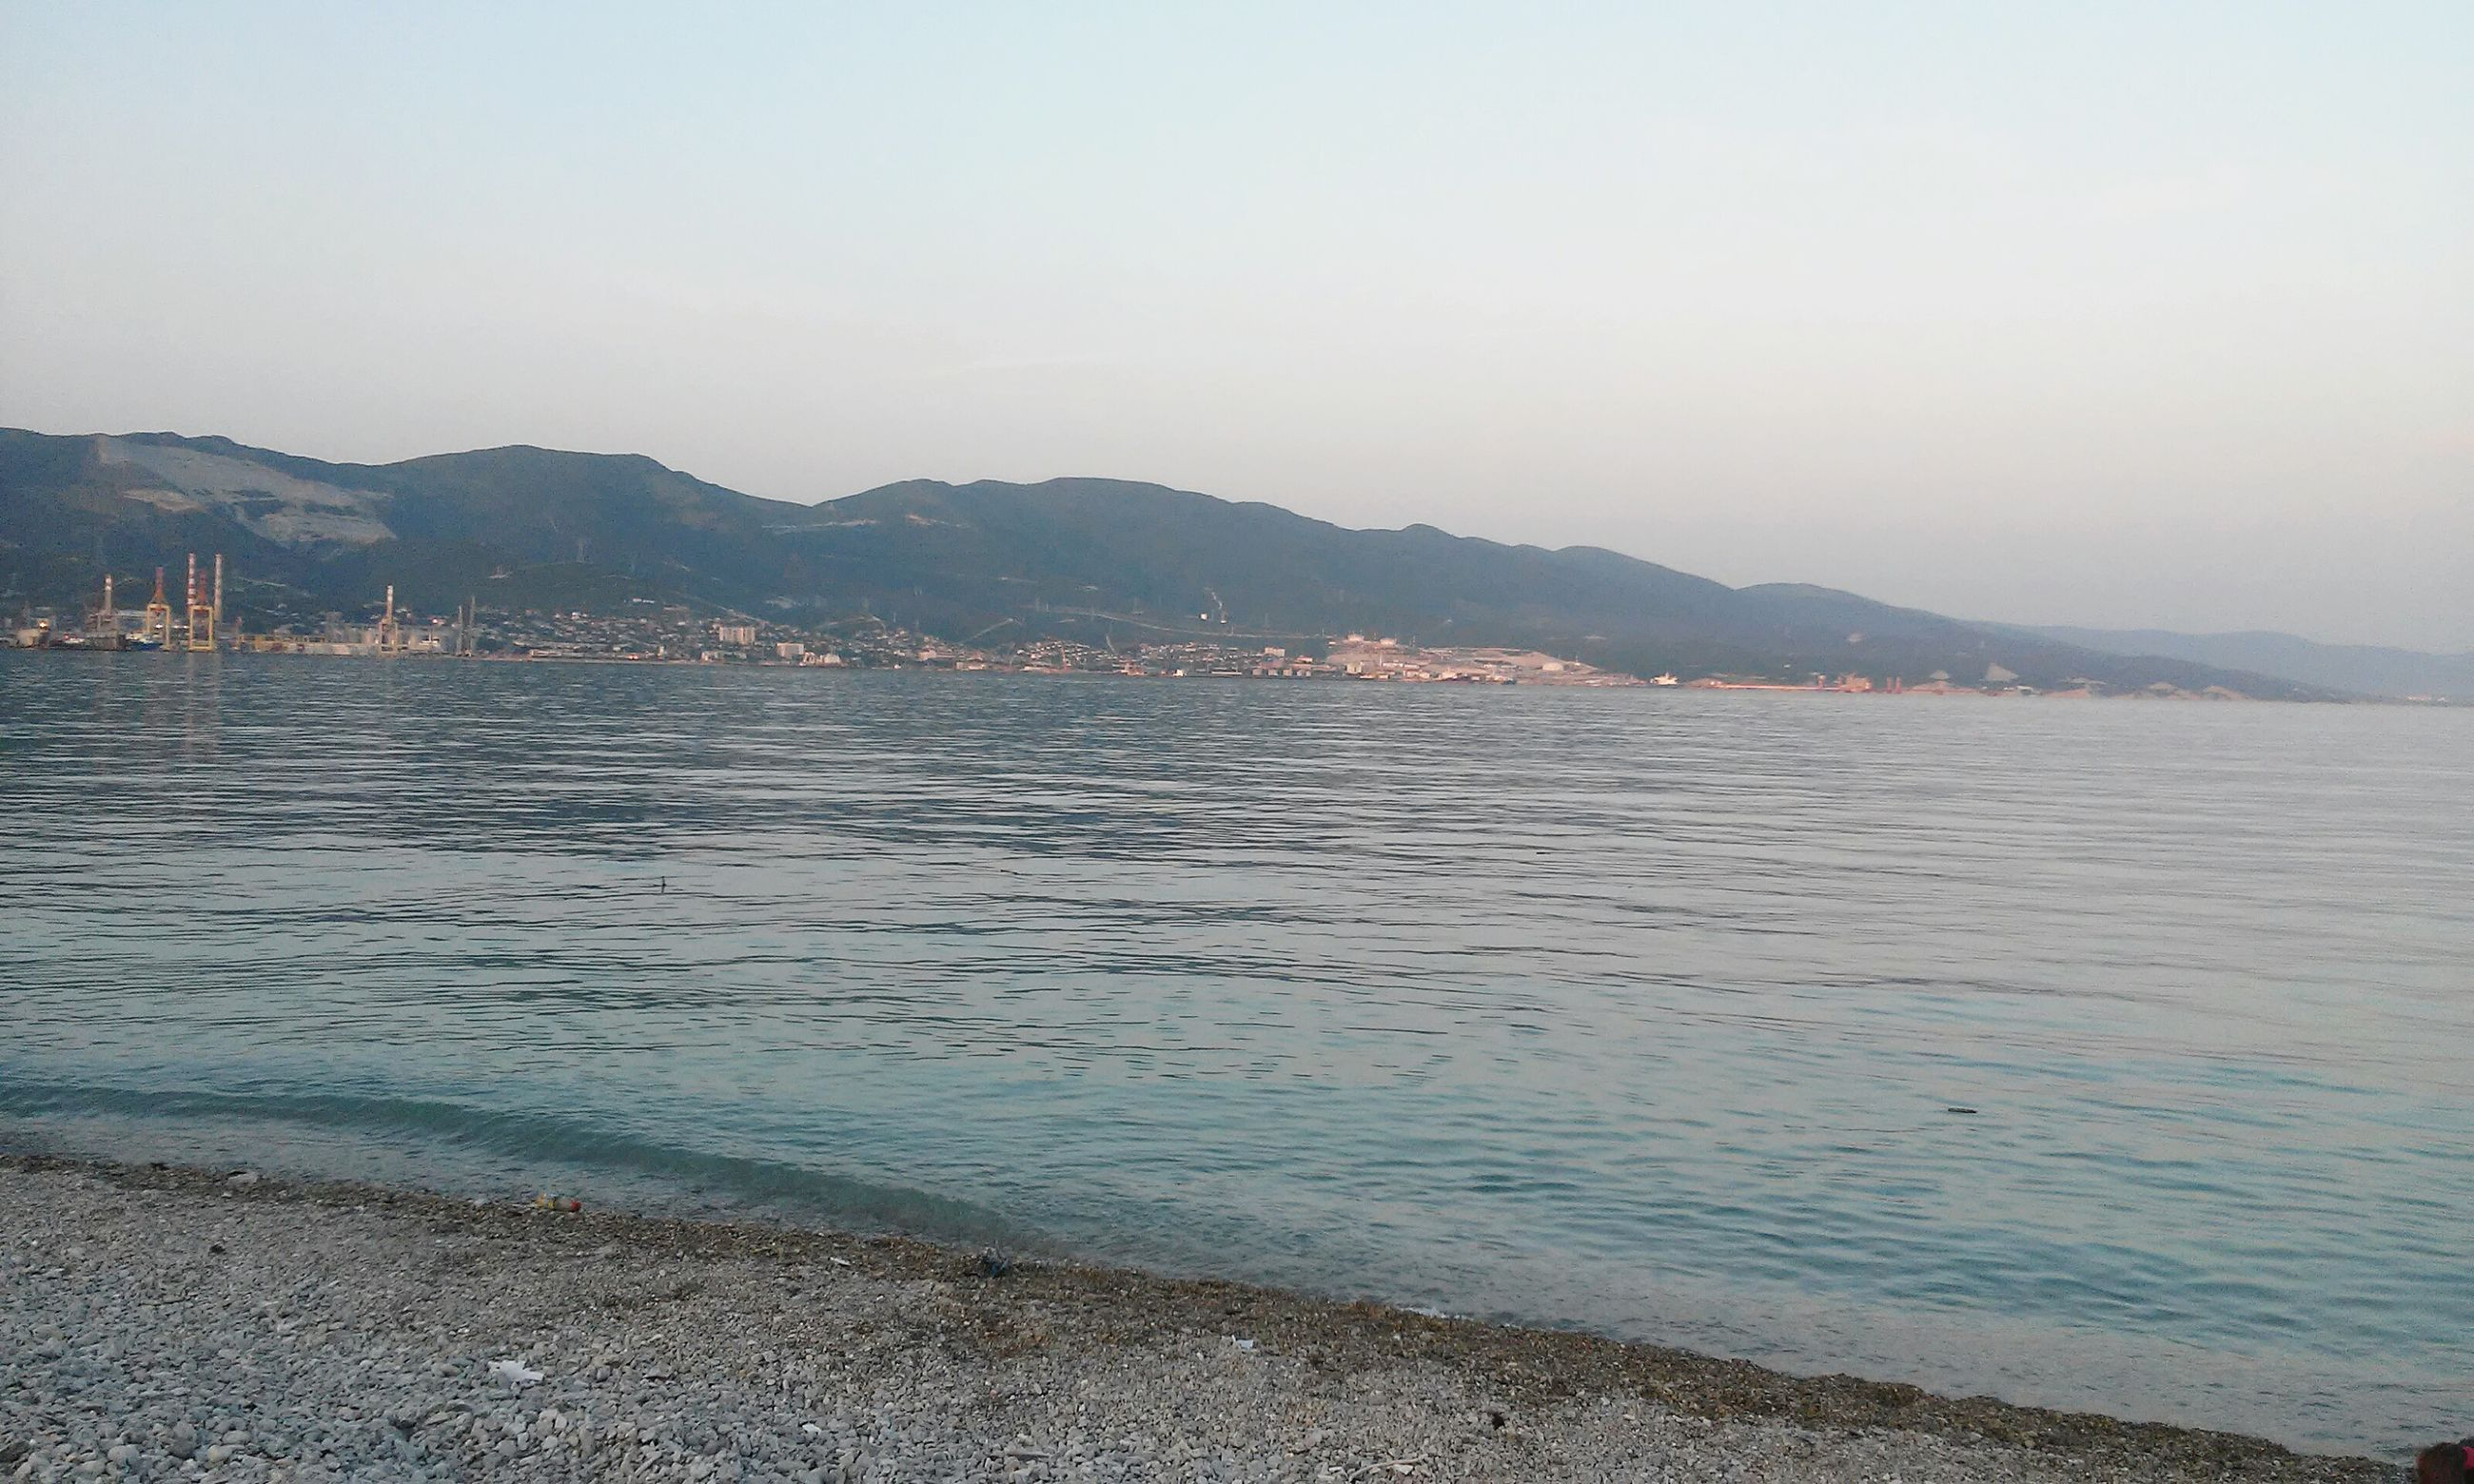 water, mountain, sea, tranquil scene, scenics, tranquility, clear sky, mountain range, beauty in nature, copy space, beach, nature, sky, shore, lake, idyllic, coastline, outdoors, waterfront, nautical vessel